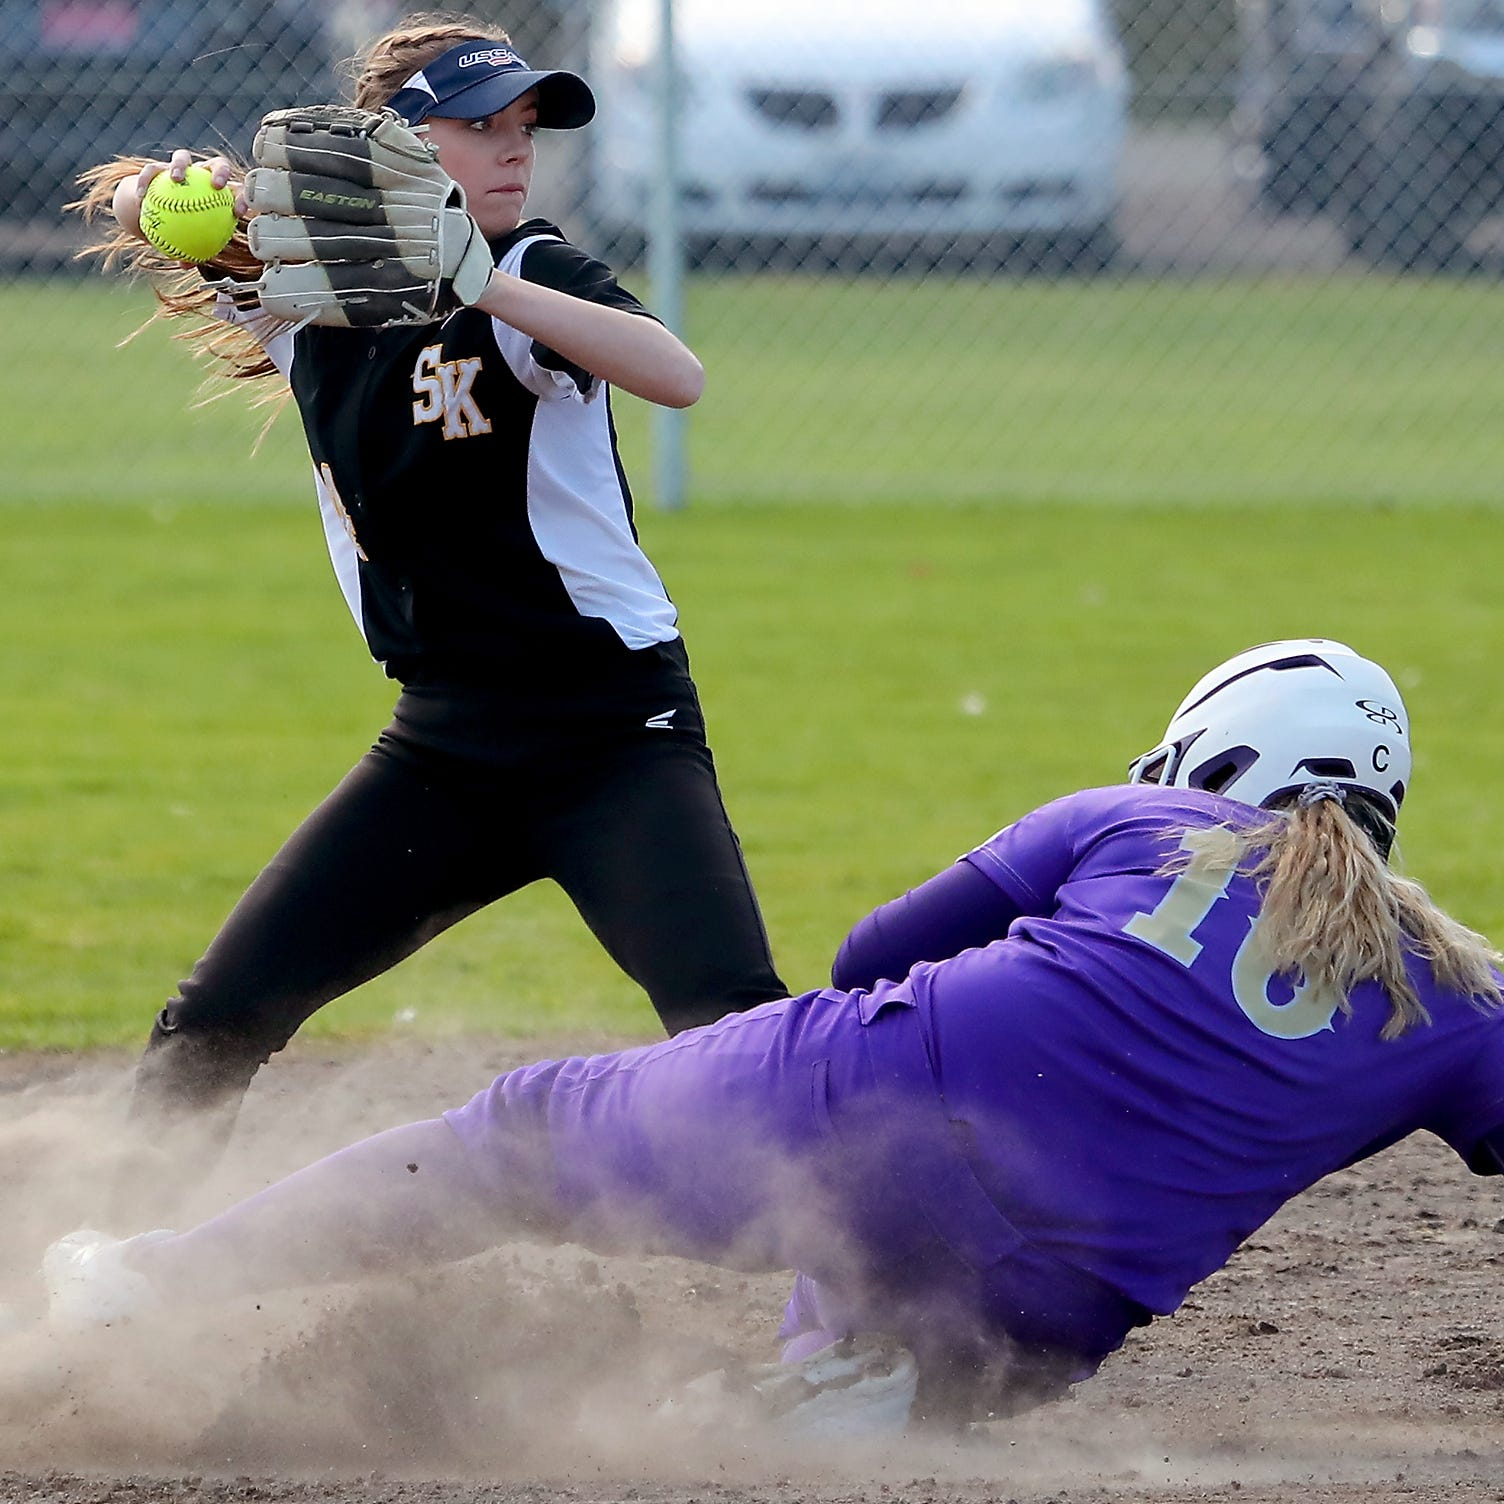 South Kitsap softball surging behind sure-handed defense